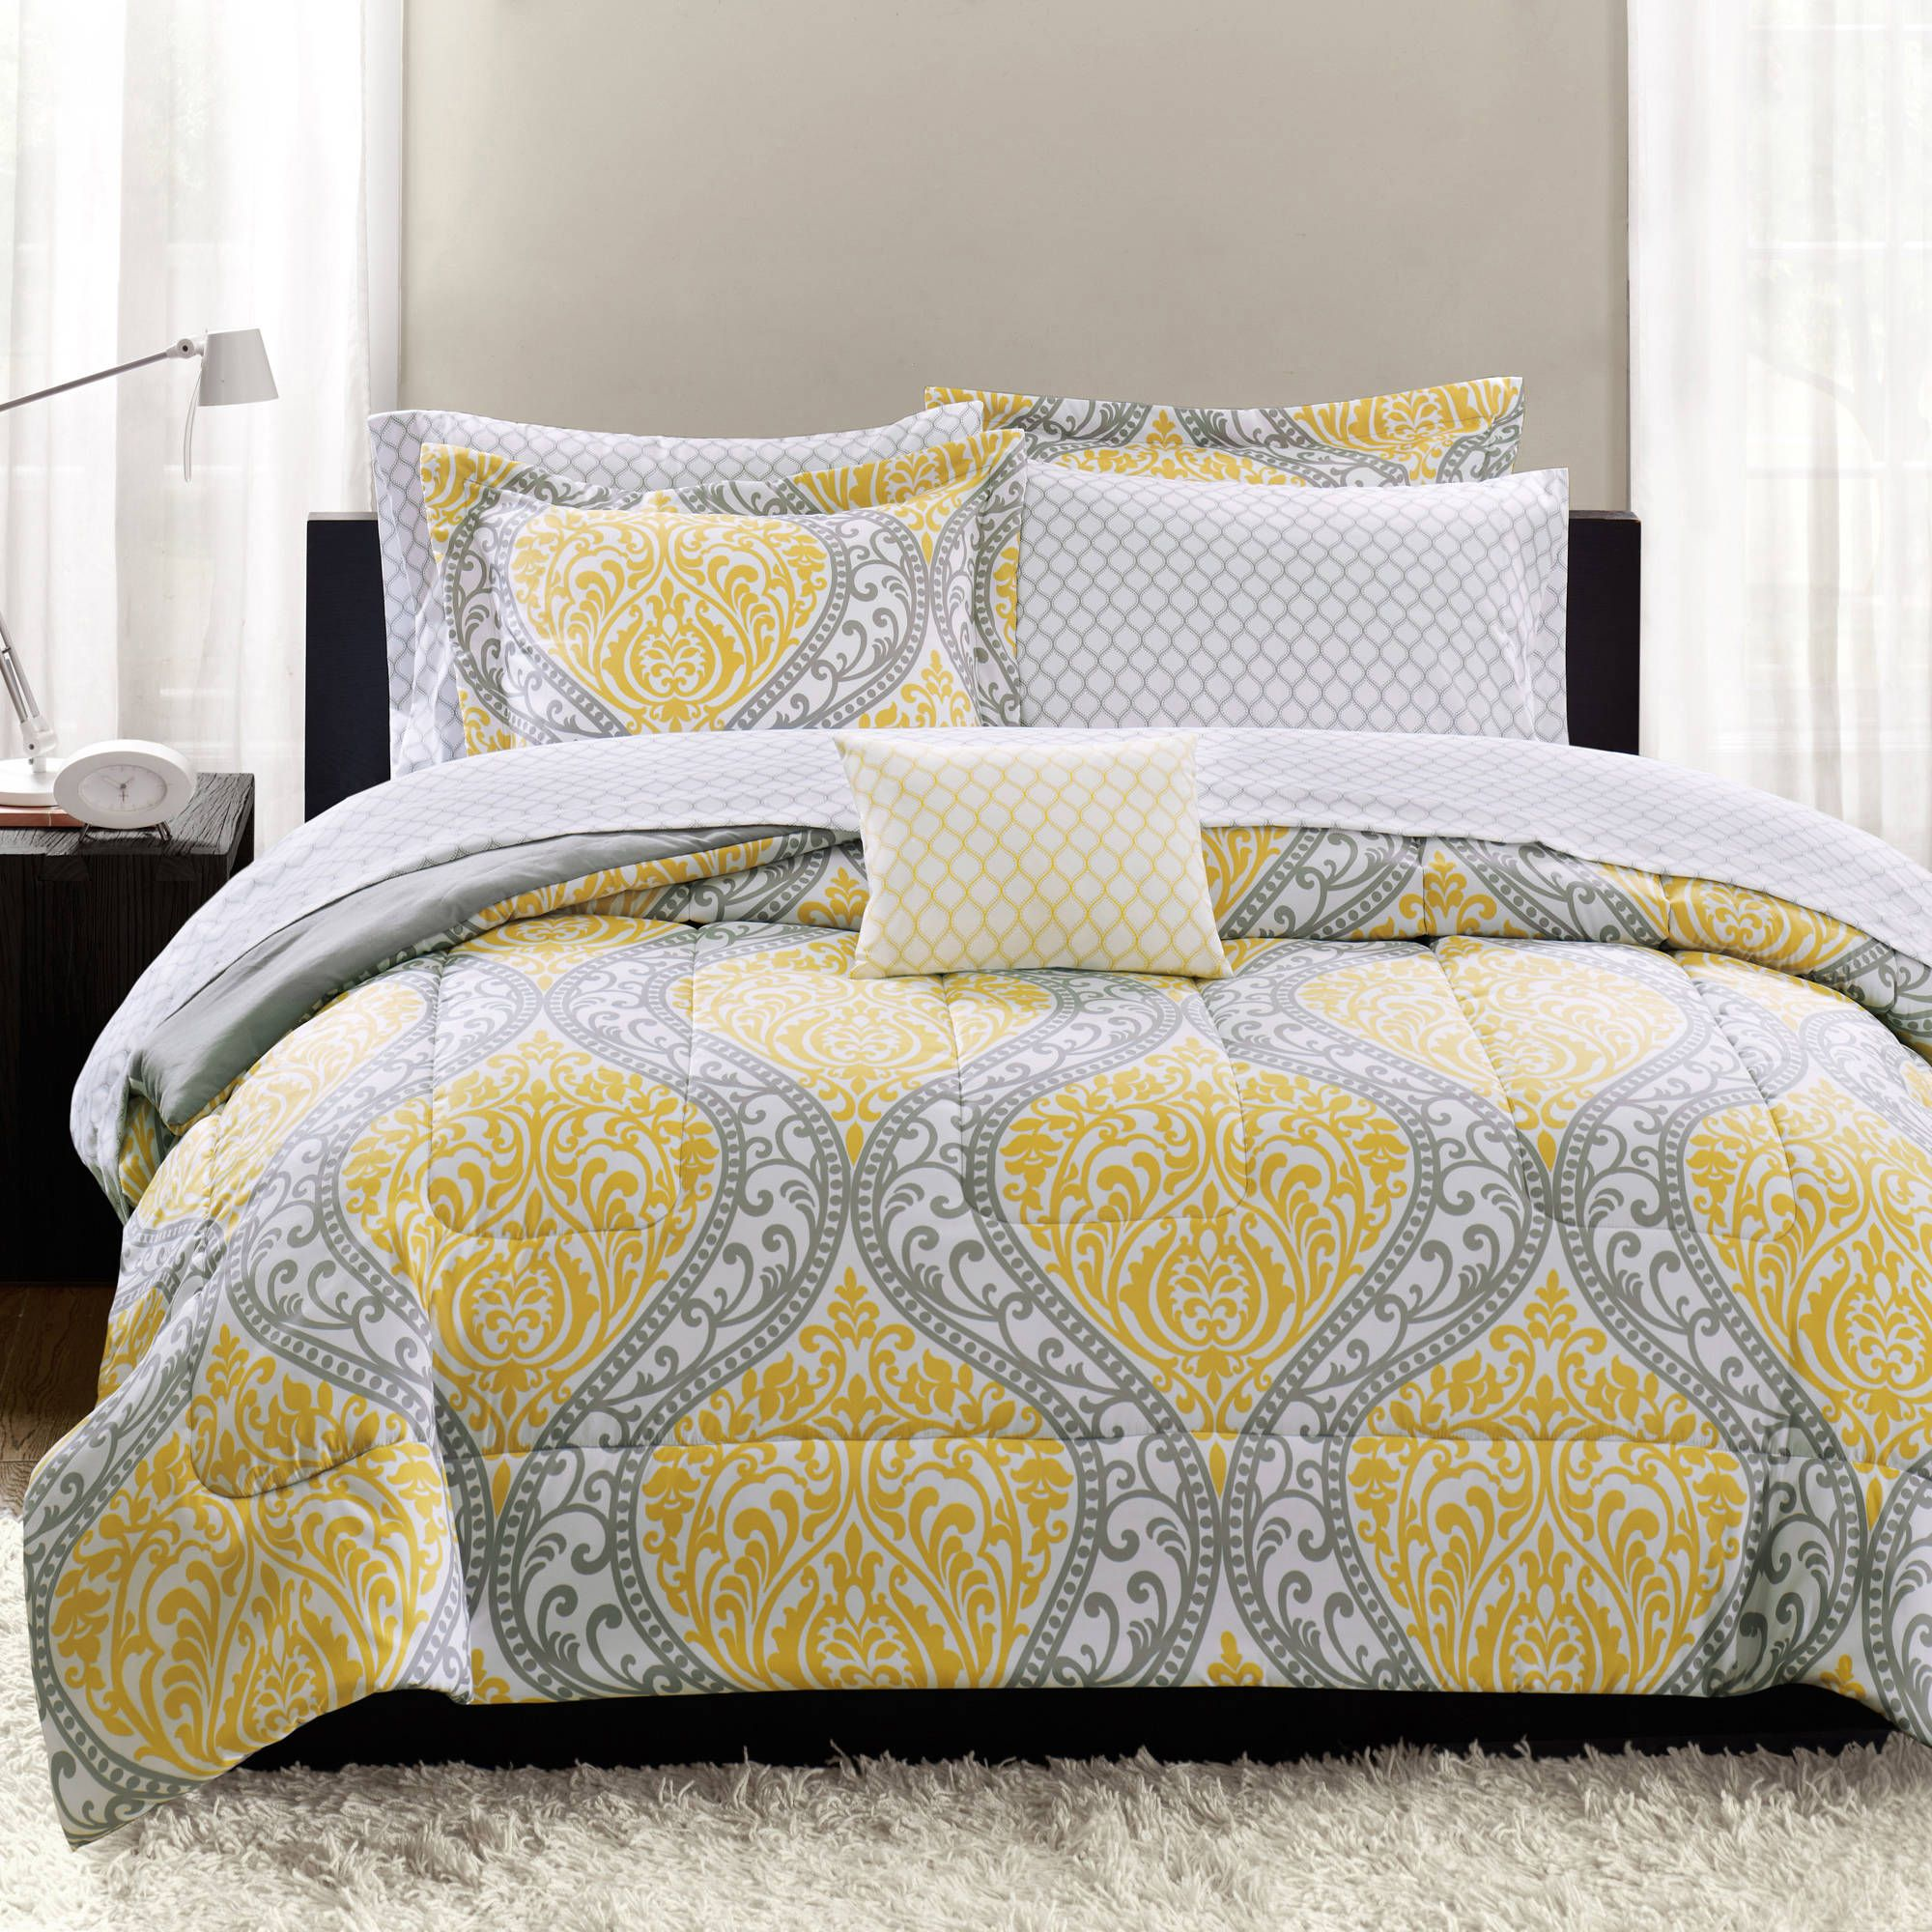 Black and white damask bedding queen - Mainstays Yellow Damask Coordinated Bedding Set Bed In A Bag Sale